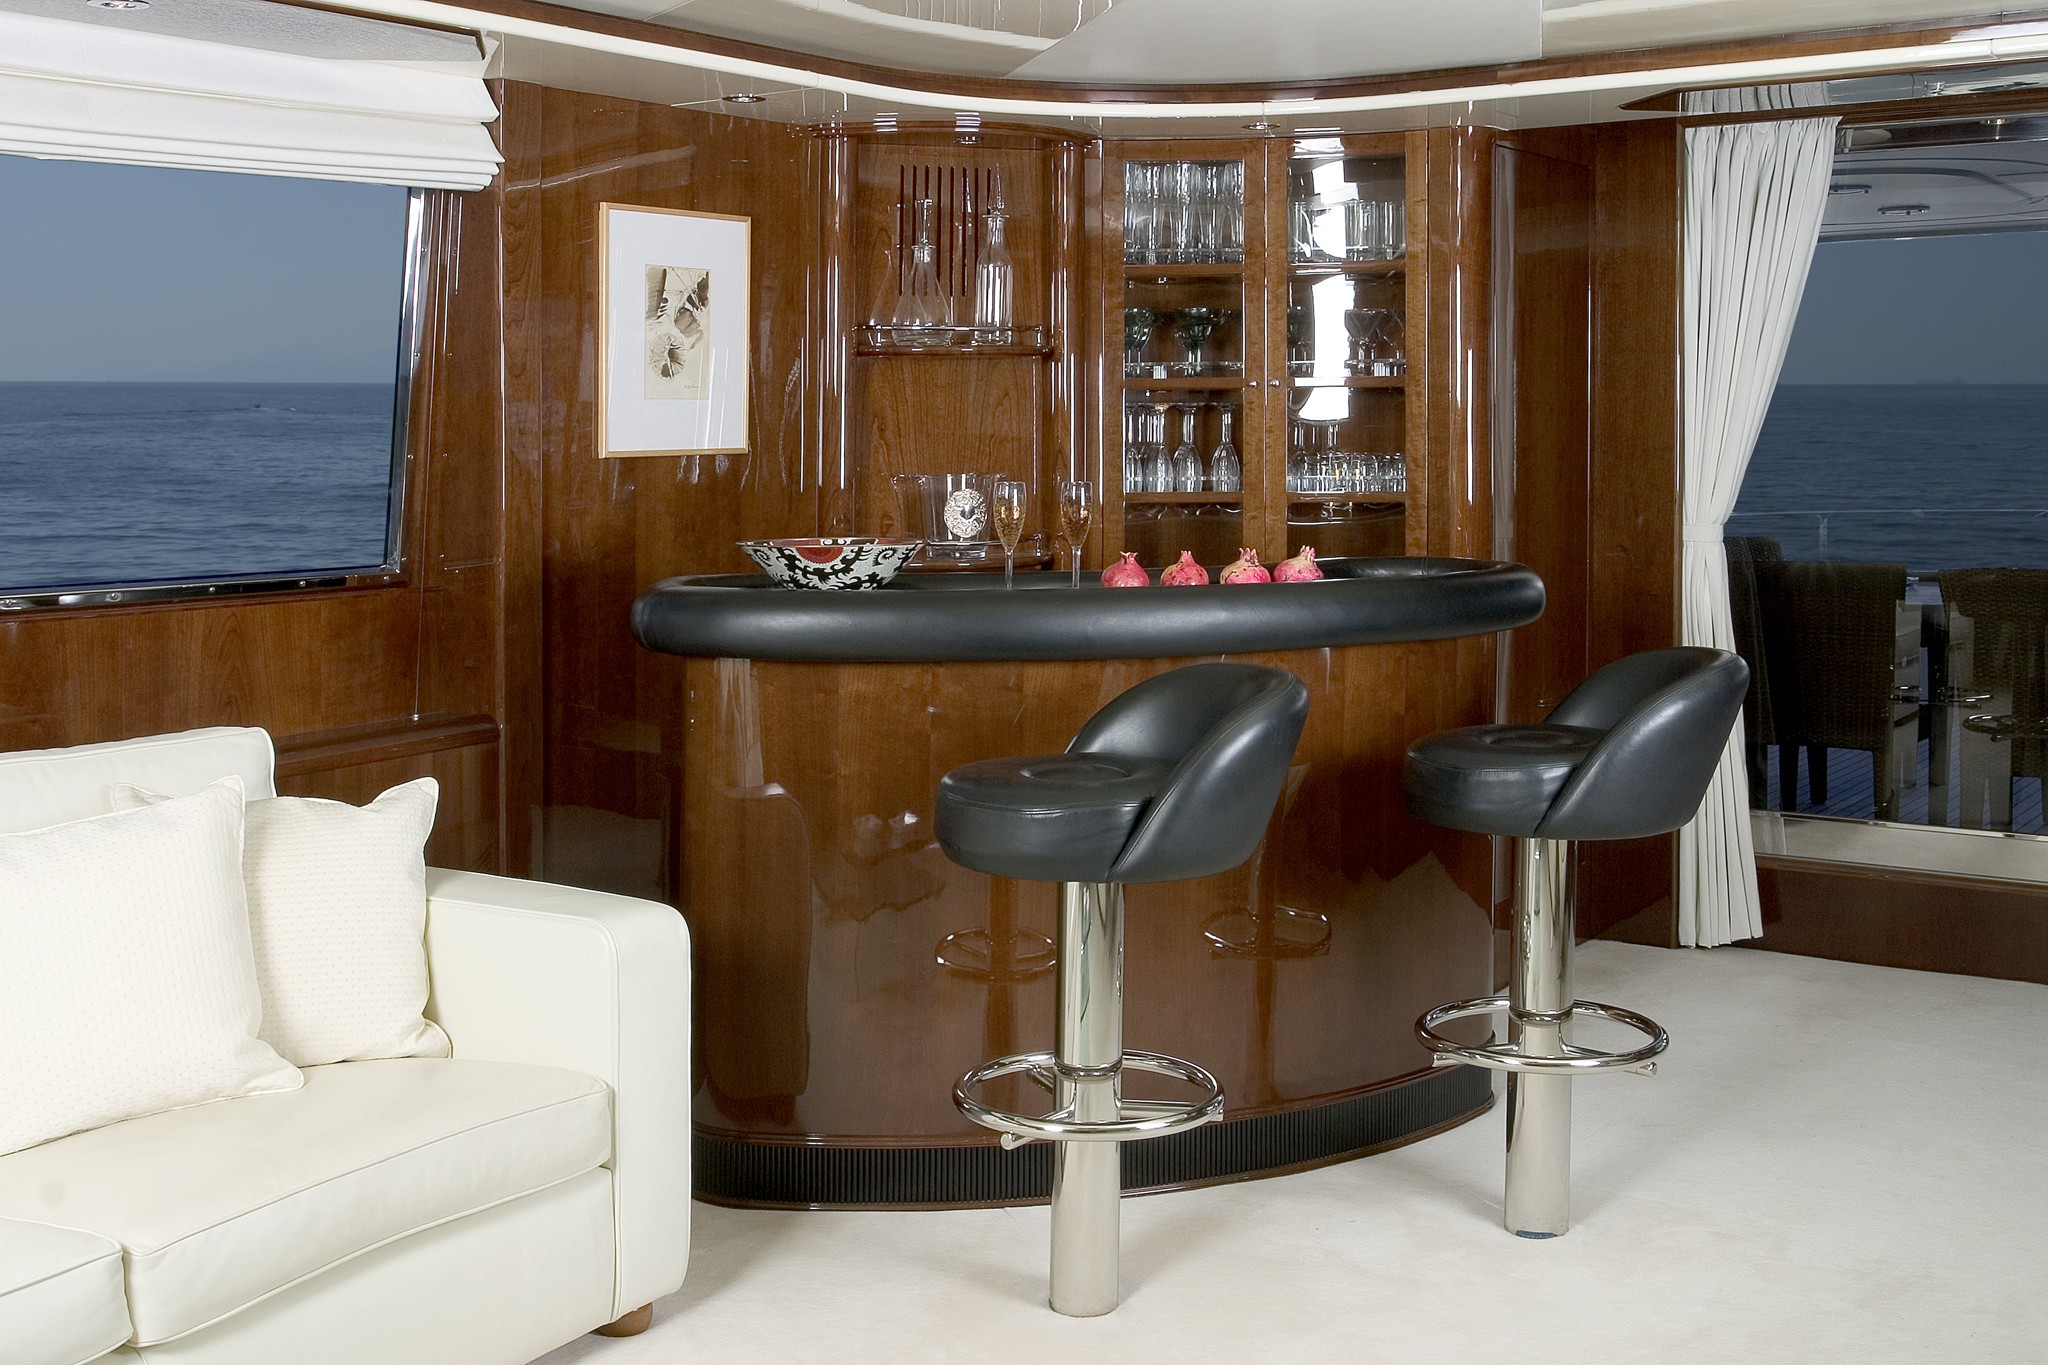 let it be yacht charter details tecnomarine greece charter yacht charterworld luxury superyachts